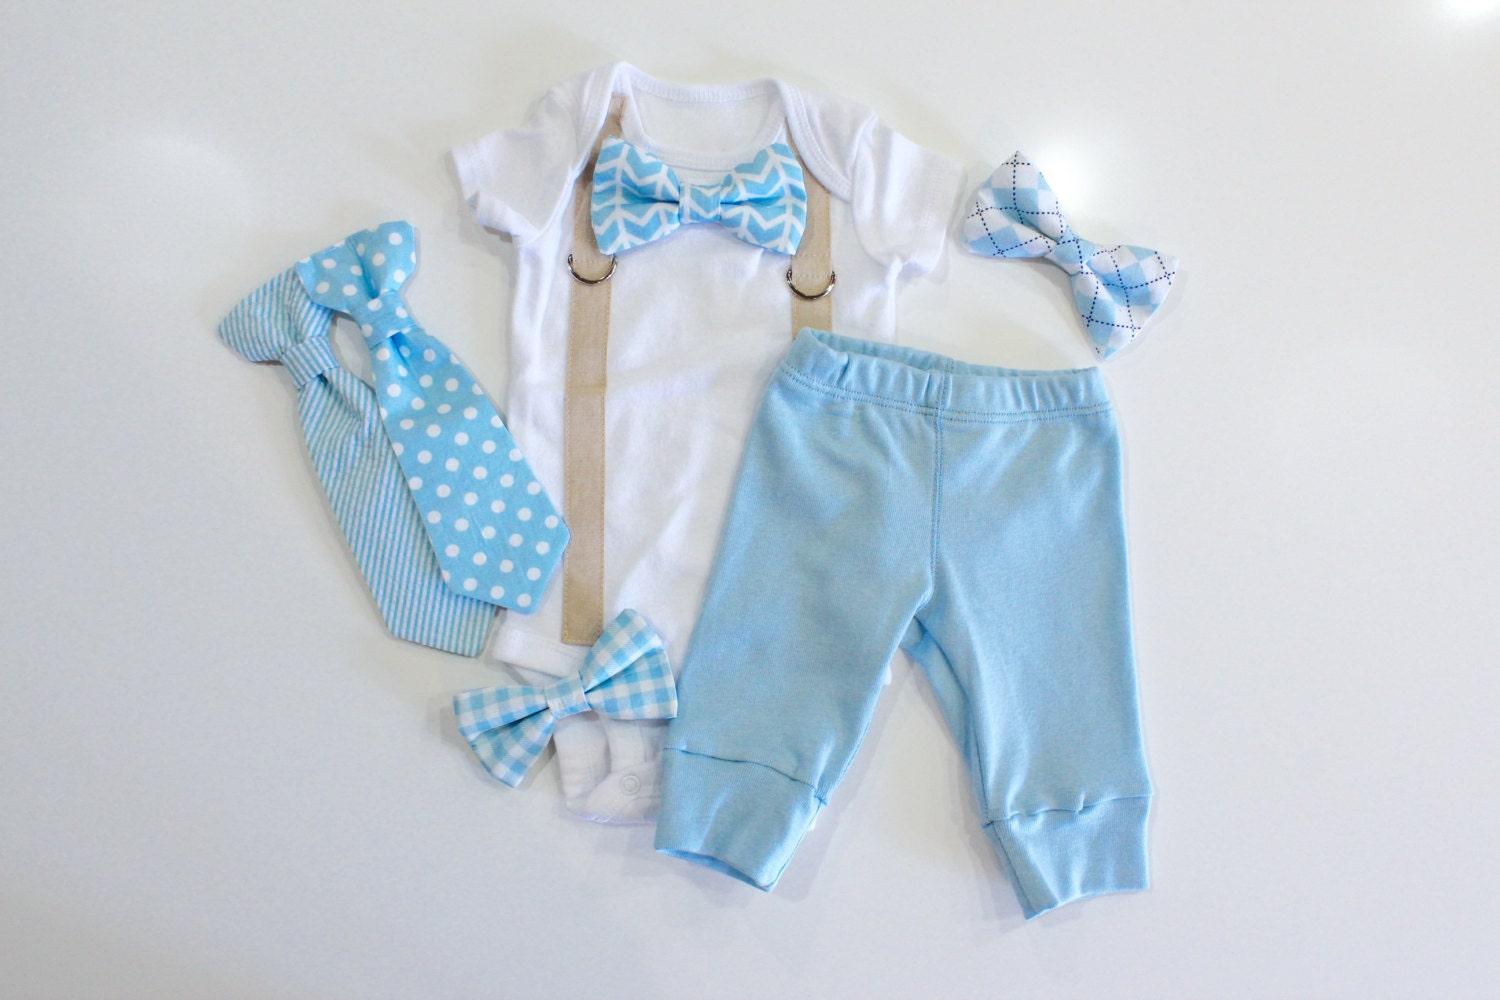 The Best Baby Coming Home Outfits for Every Season From layettes to cotton muslin onesies, here are the sweetest looks for baby's homecoming. In the first few days of your baby's life, there are many important moments you'll want to treasure forever.